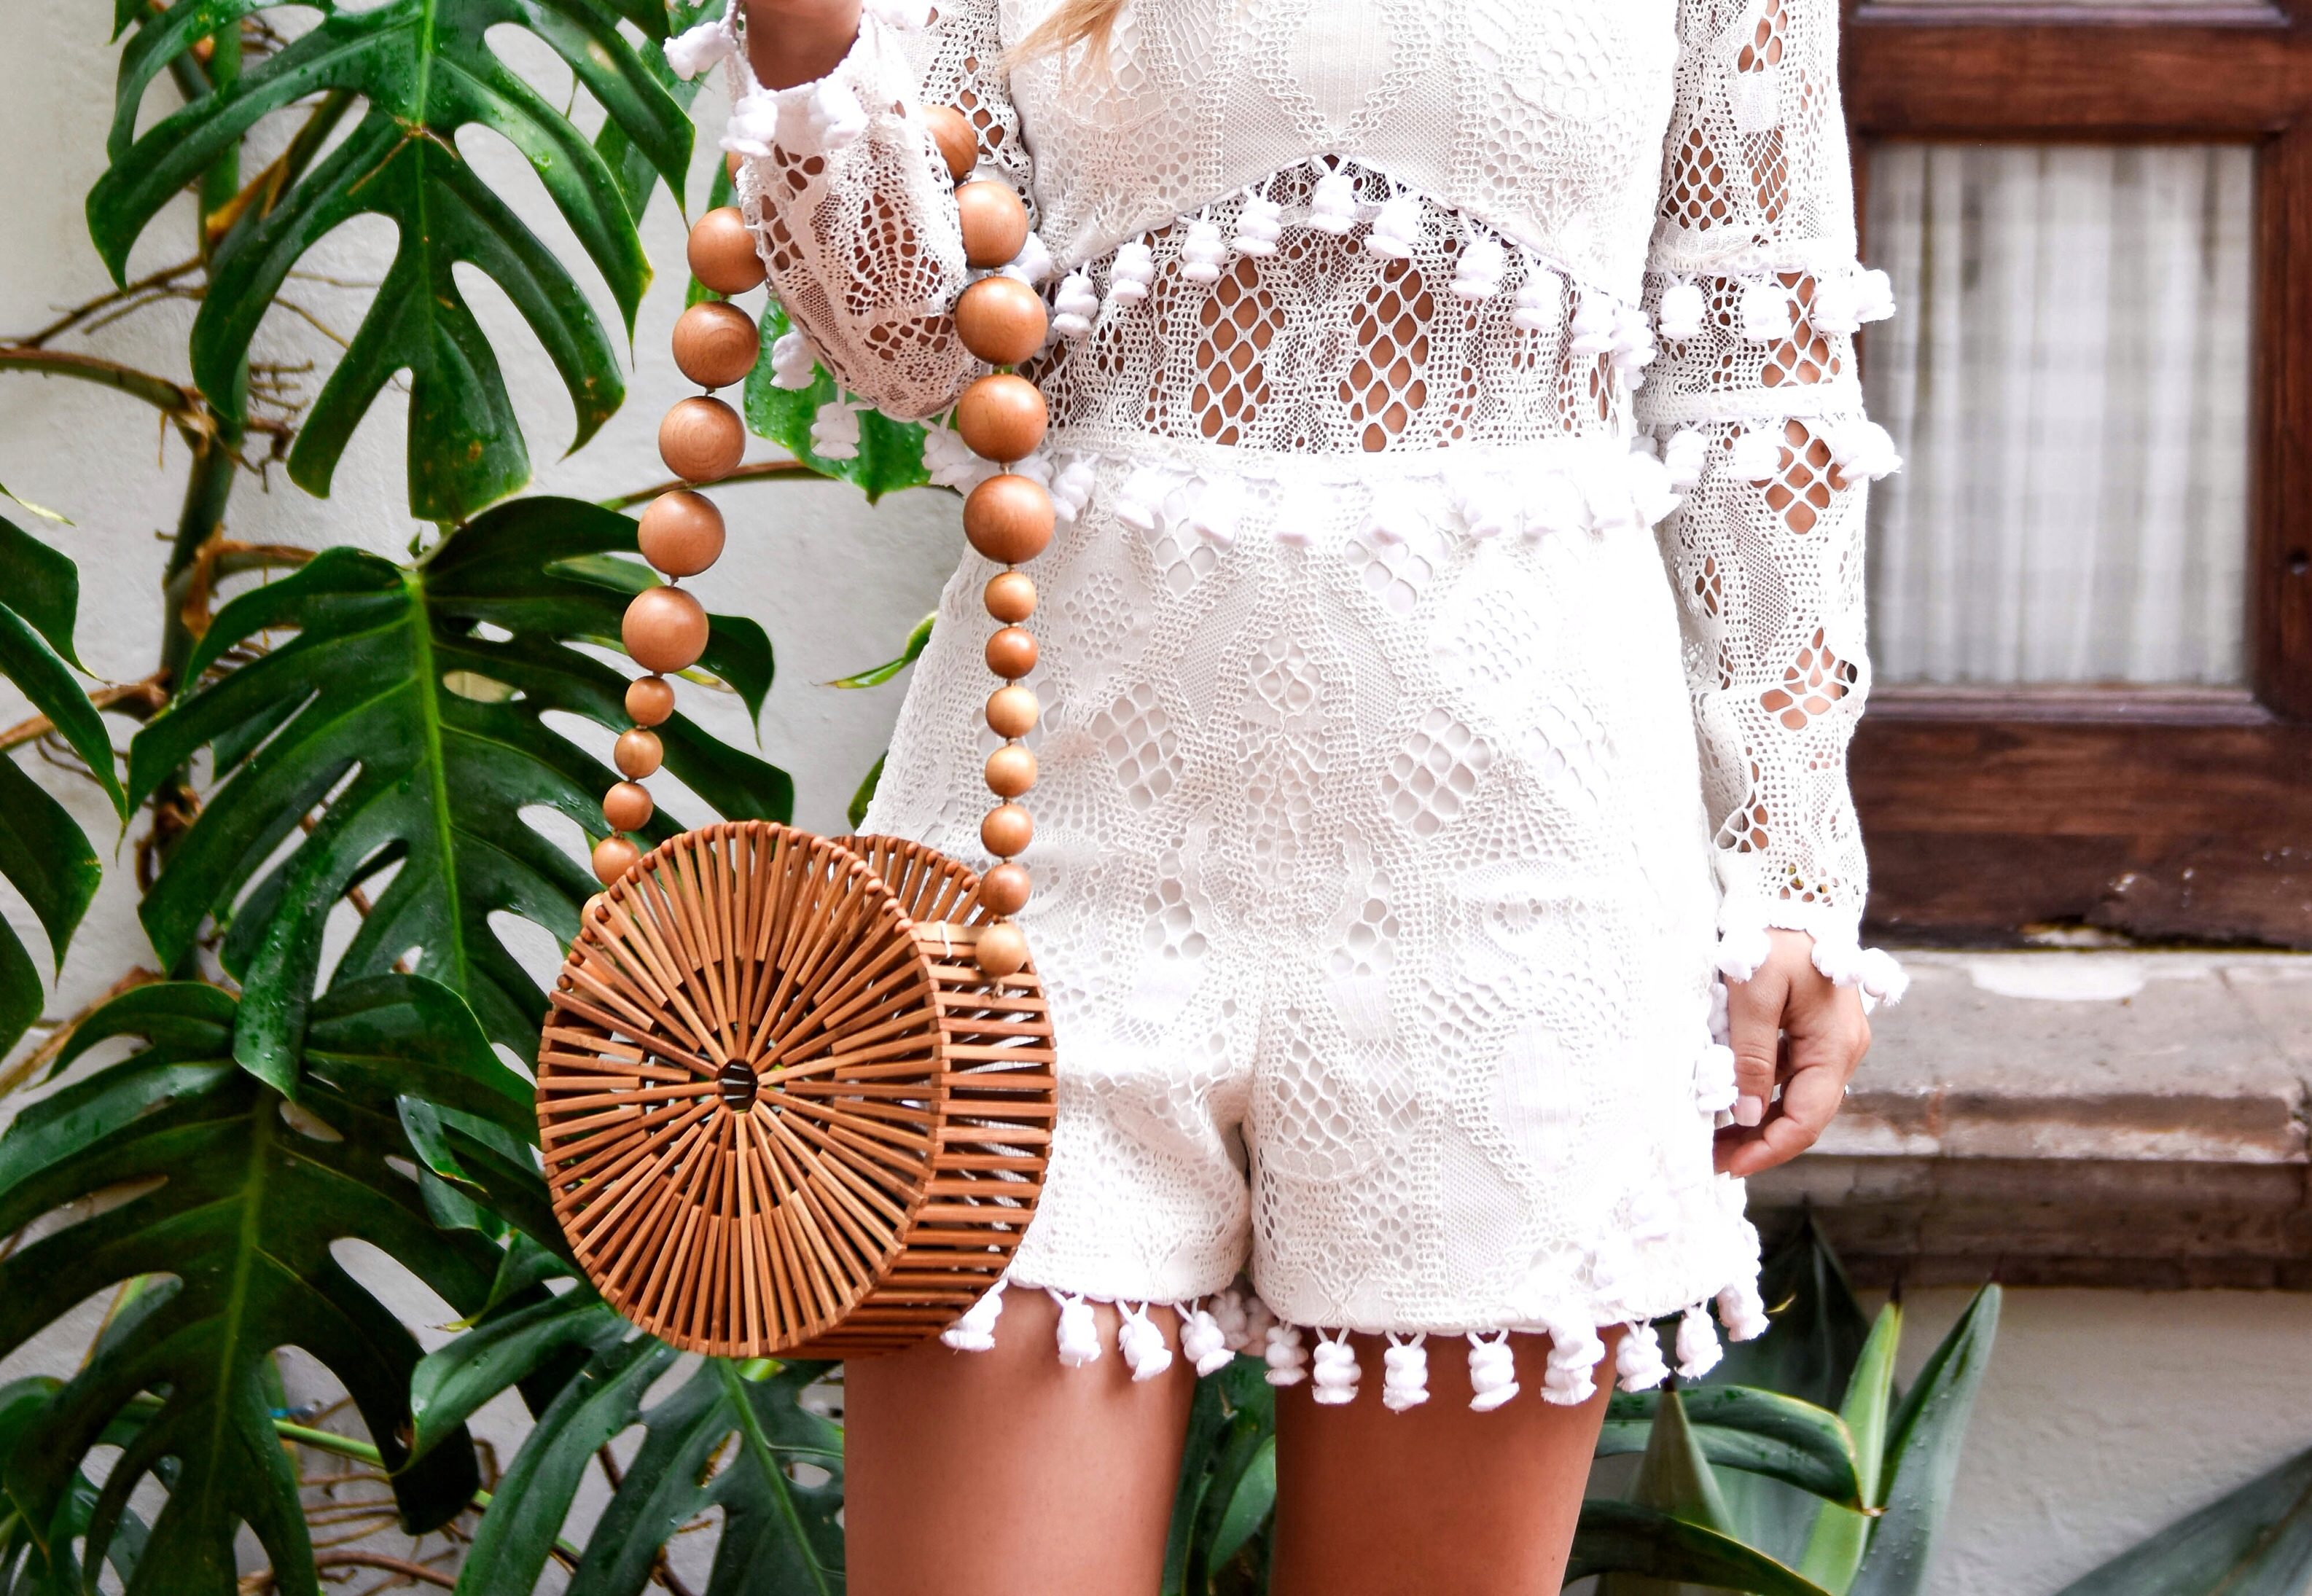 Alexis Danika Romper, White Tassel Romper, White Romper, Cult Gaia, Cult Gaia Bag, Travel Blogger, Fashion Blogger, LoMurph, Lo Murphy, Mexico, Sam Edelman Sandals